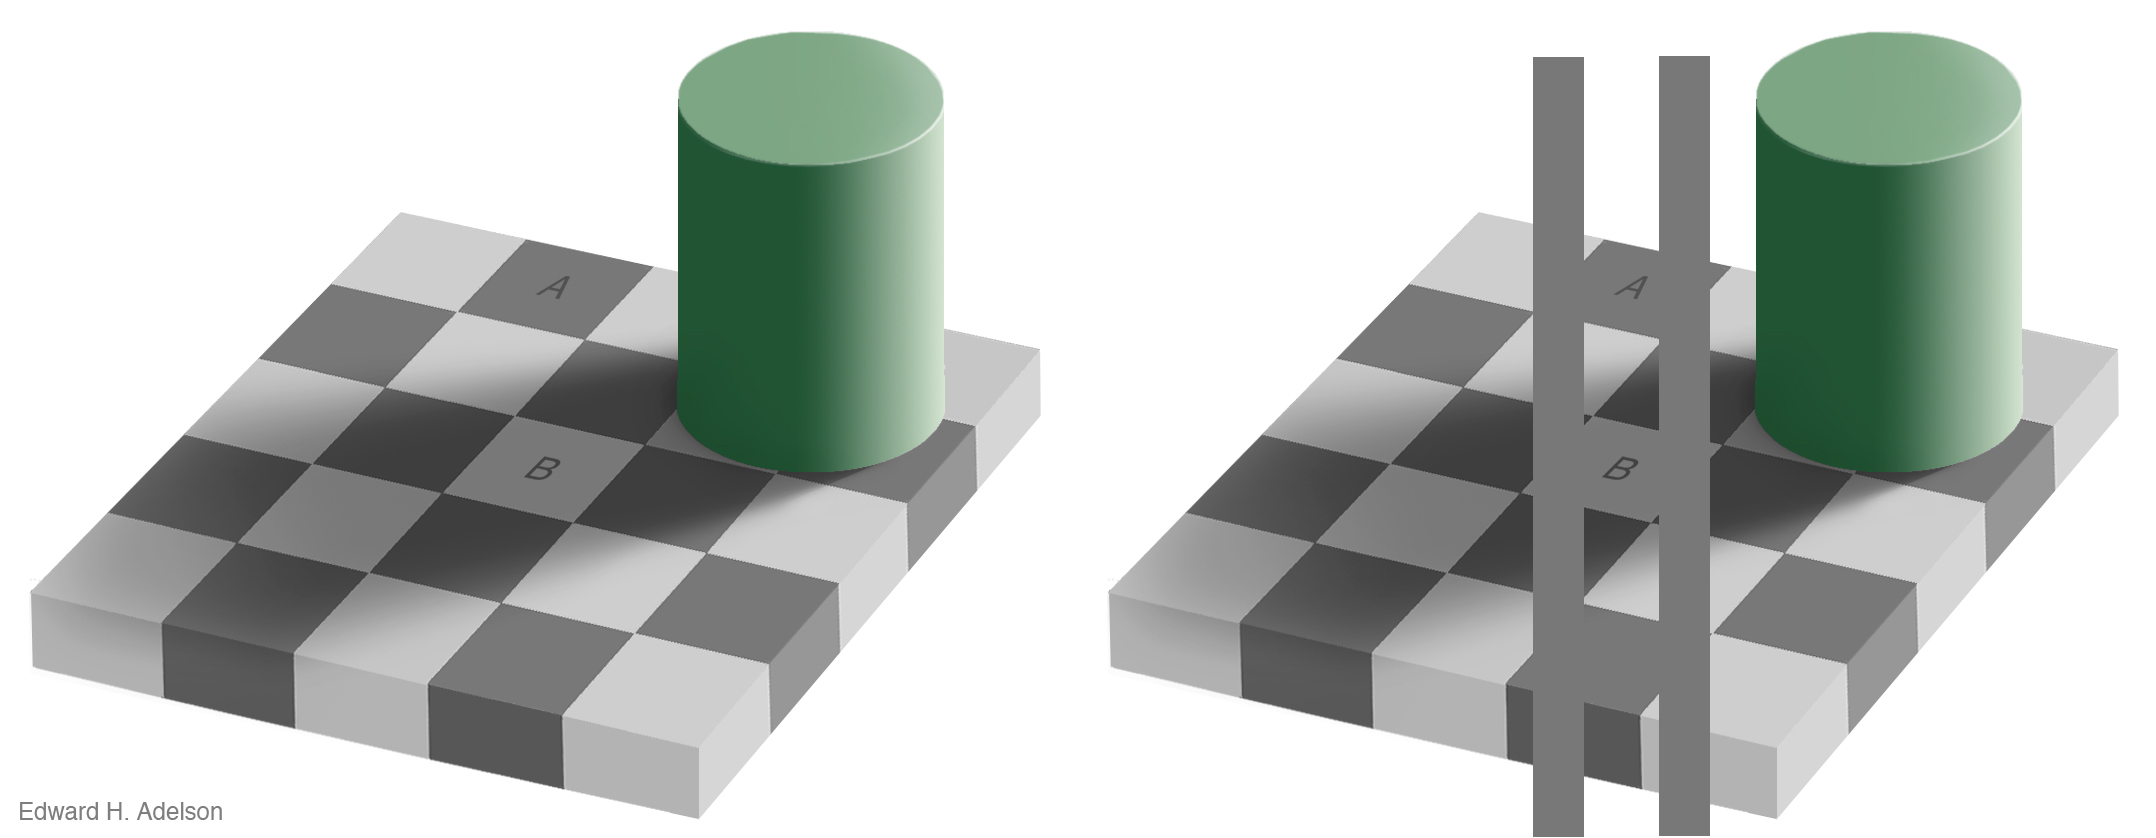 The checkershadow illusion (Edward H. Adelson).